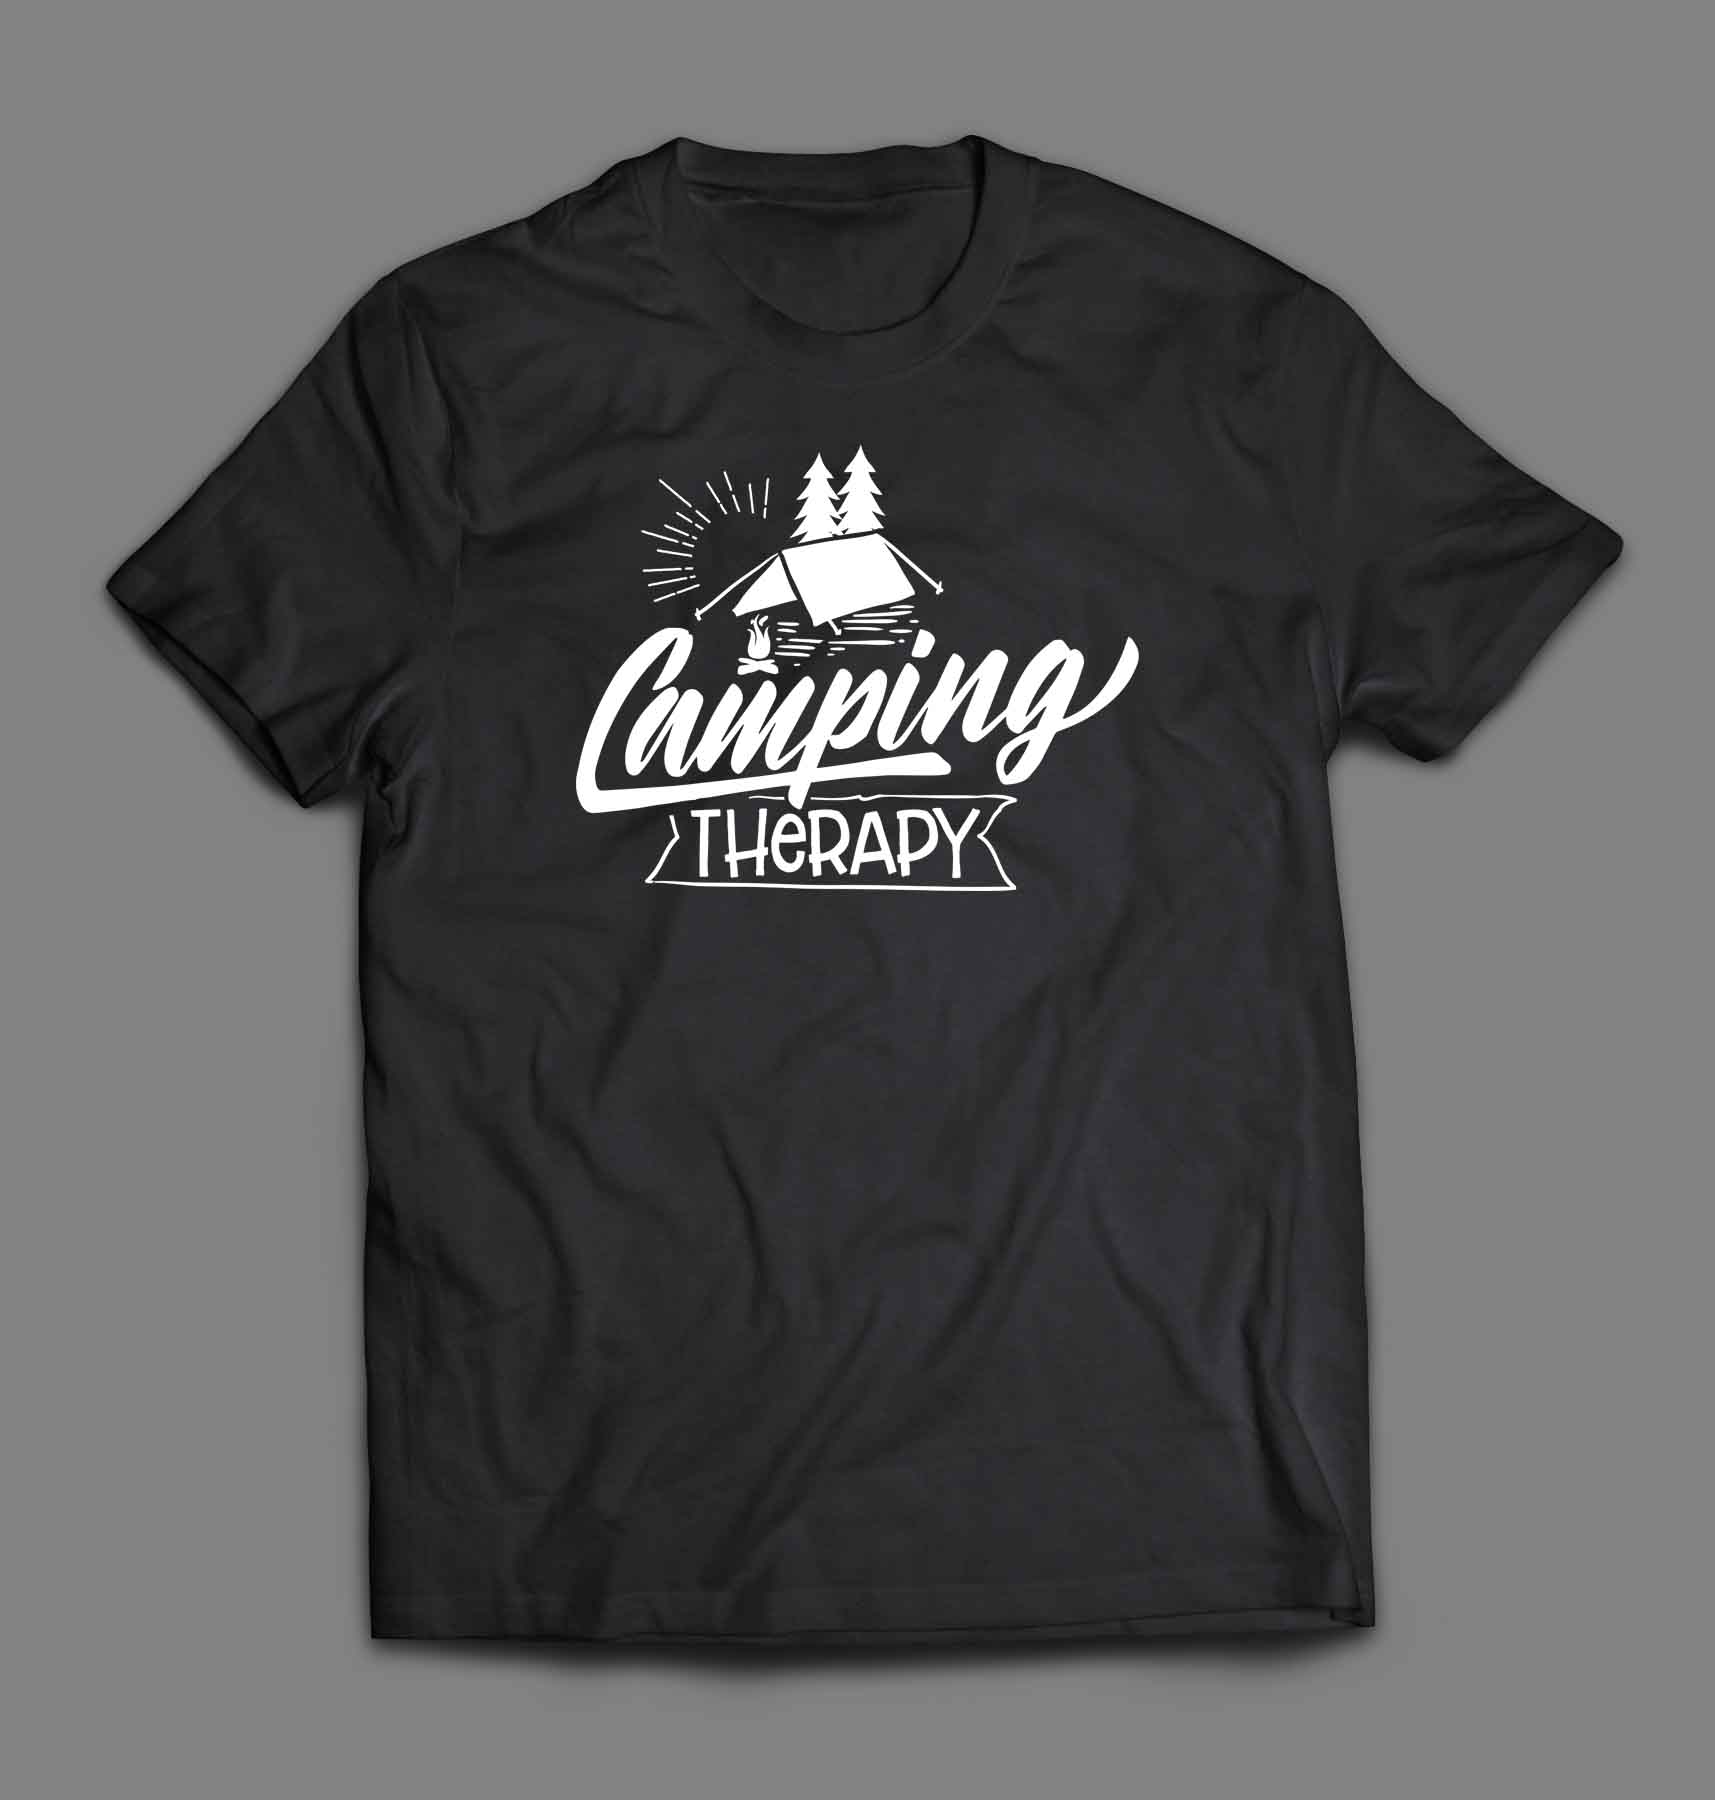 Camping therapy T-shirt